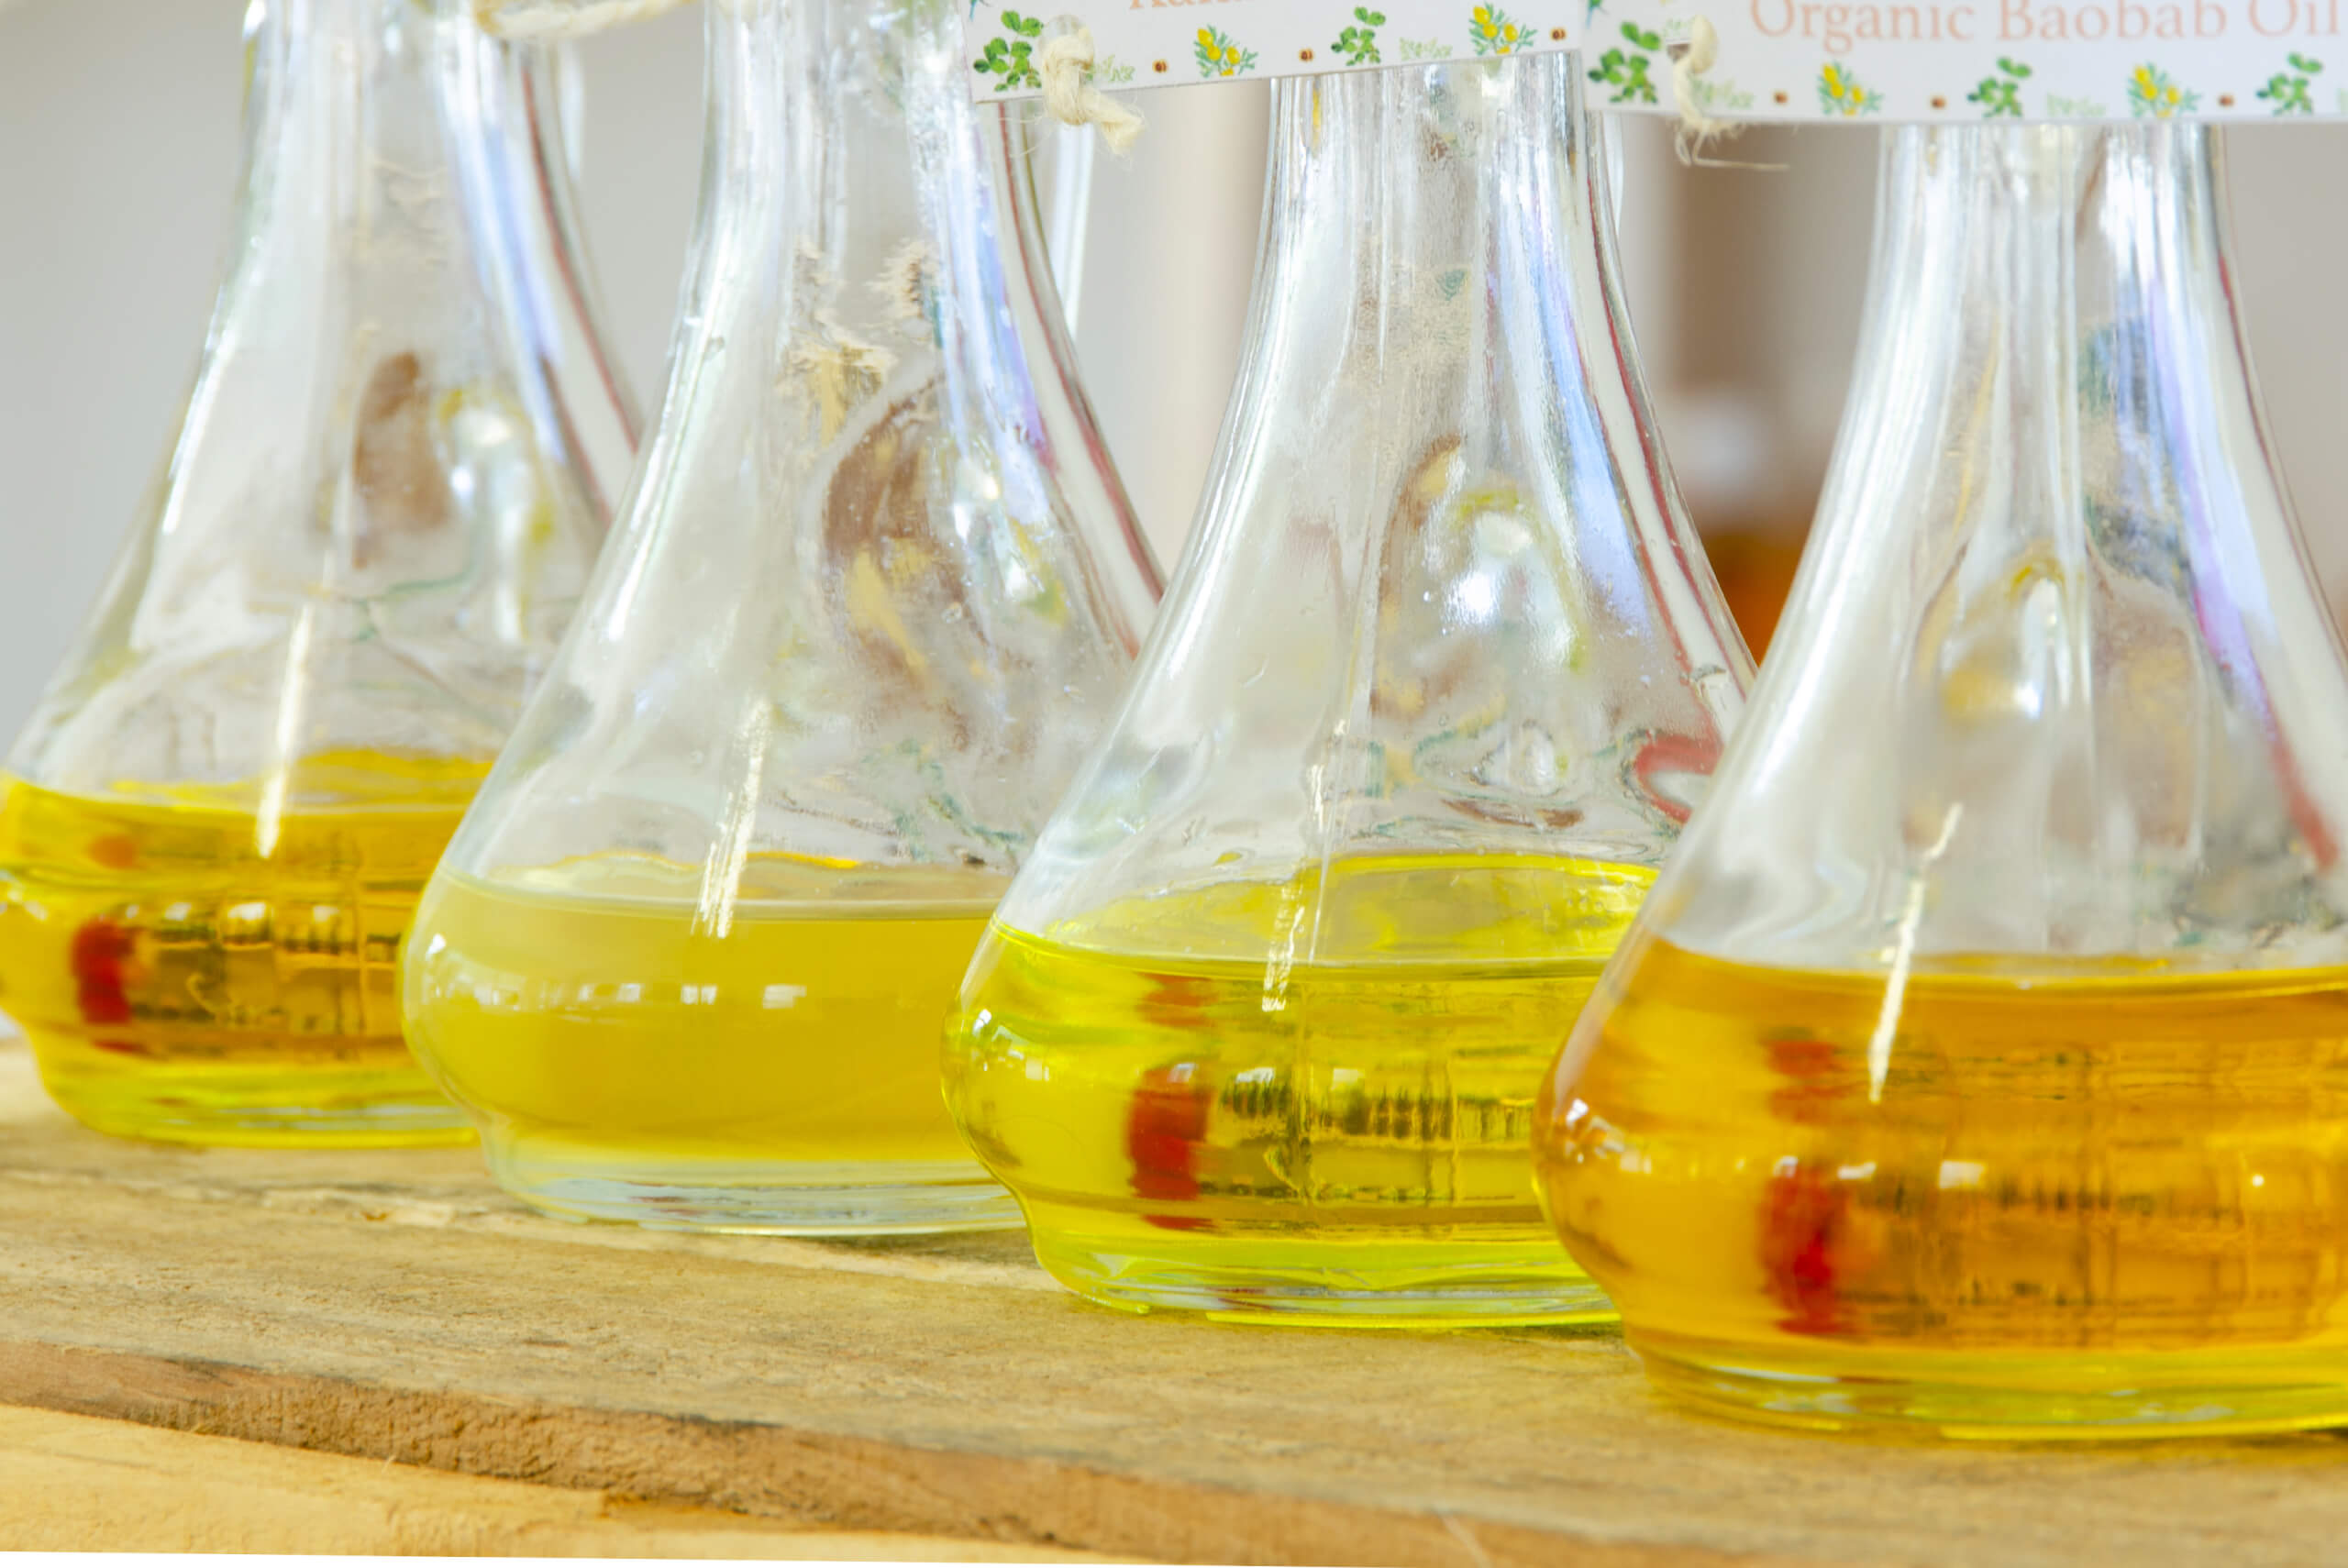 Botanical oils contain a variety of bioactive molecules with skin healing and nourishing properties.